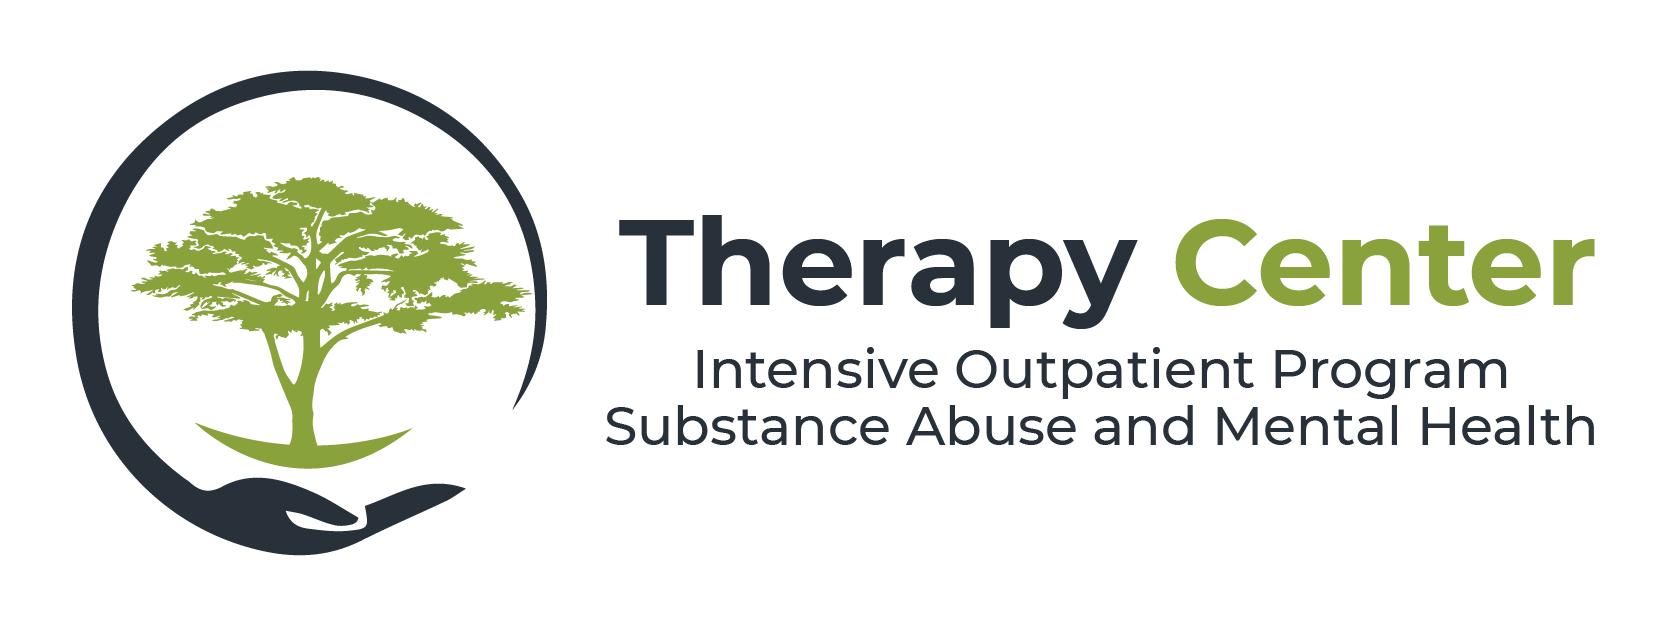 Therapy Center & Family Counseling